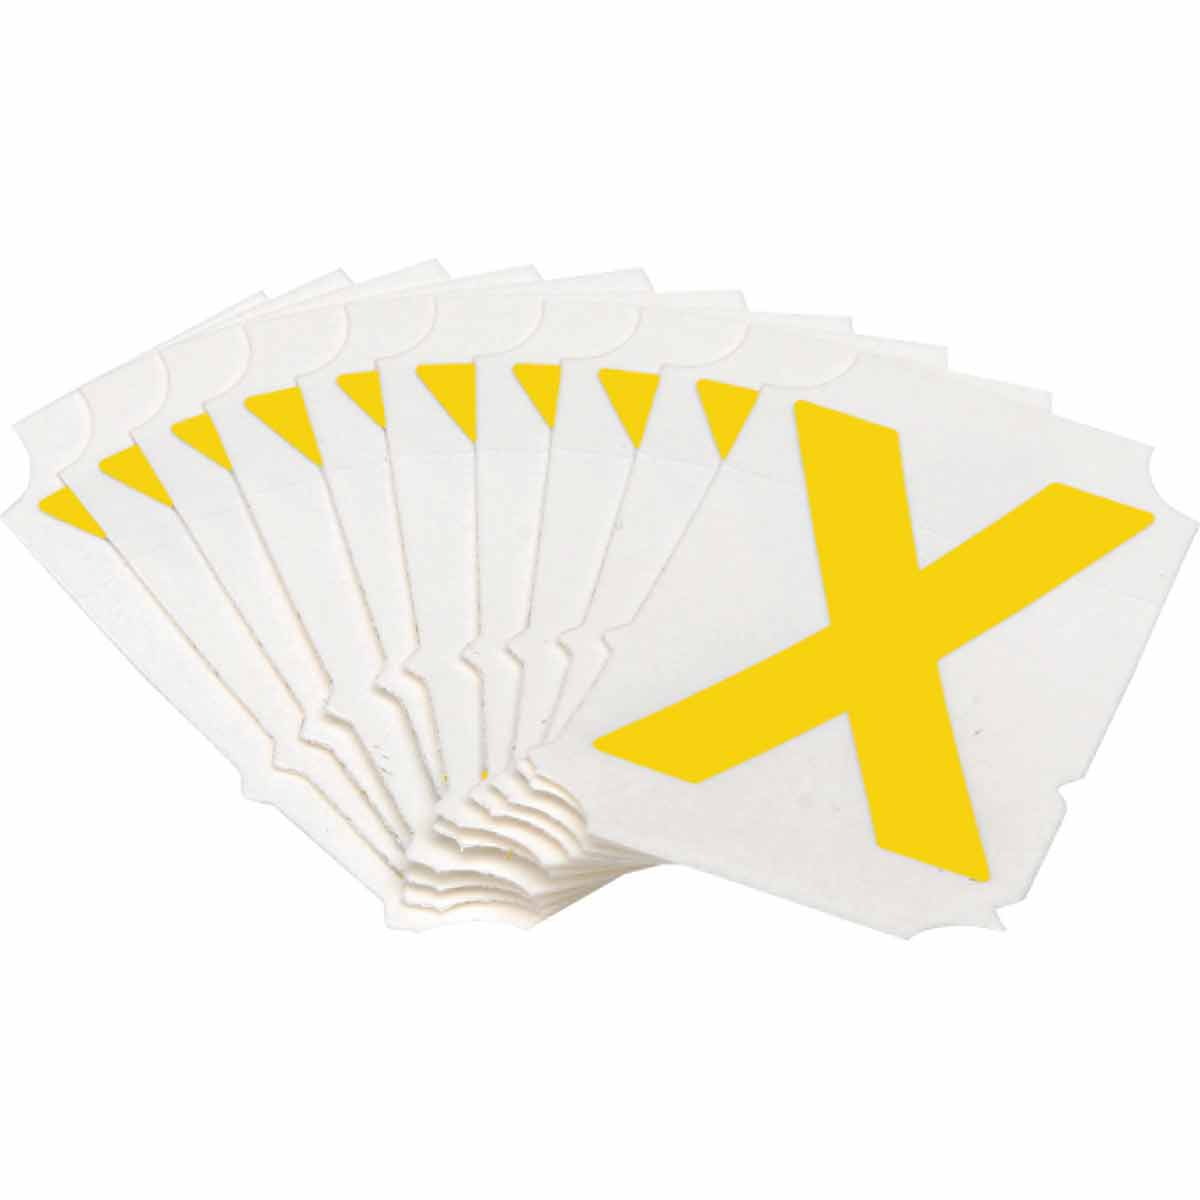 Brady® Quik-Align® 5060-X Non-Reflective Letter Label, 2 in H Yellow X Character, B-933 Vinyl